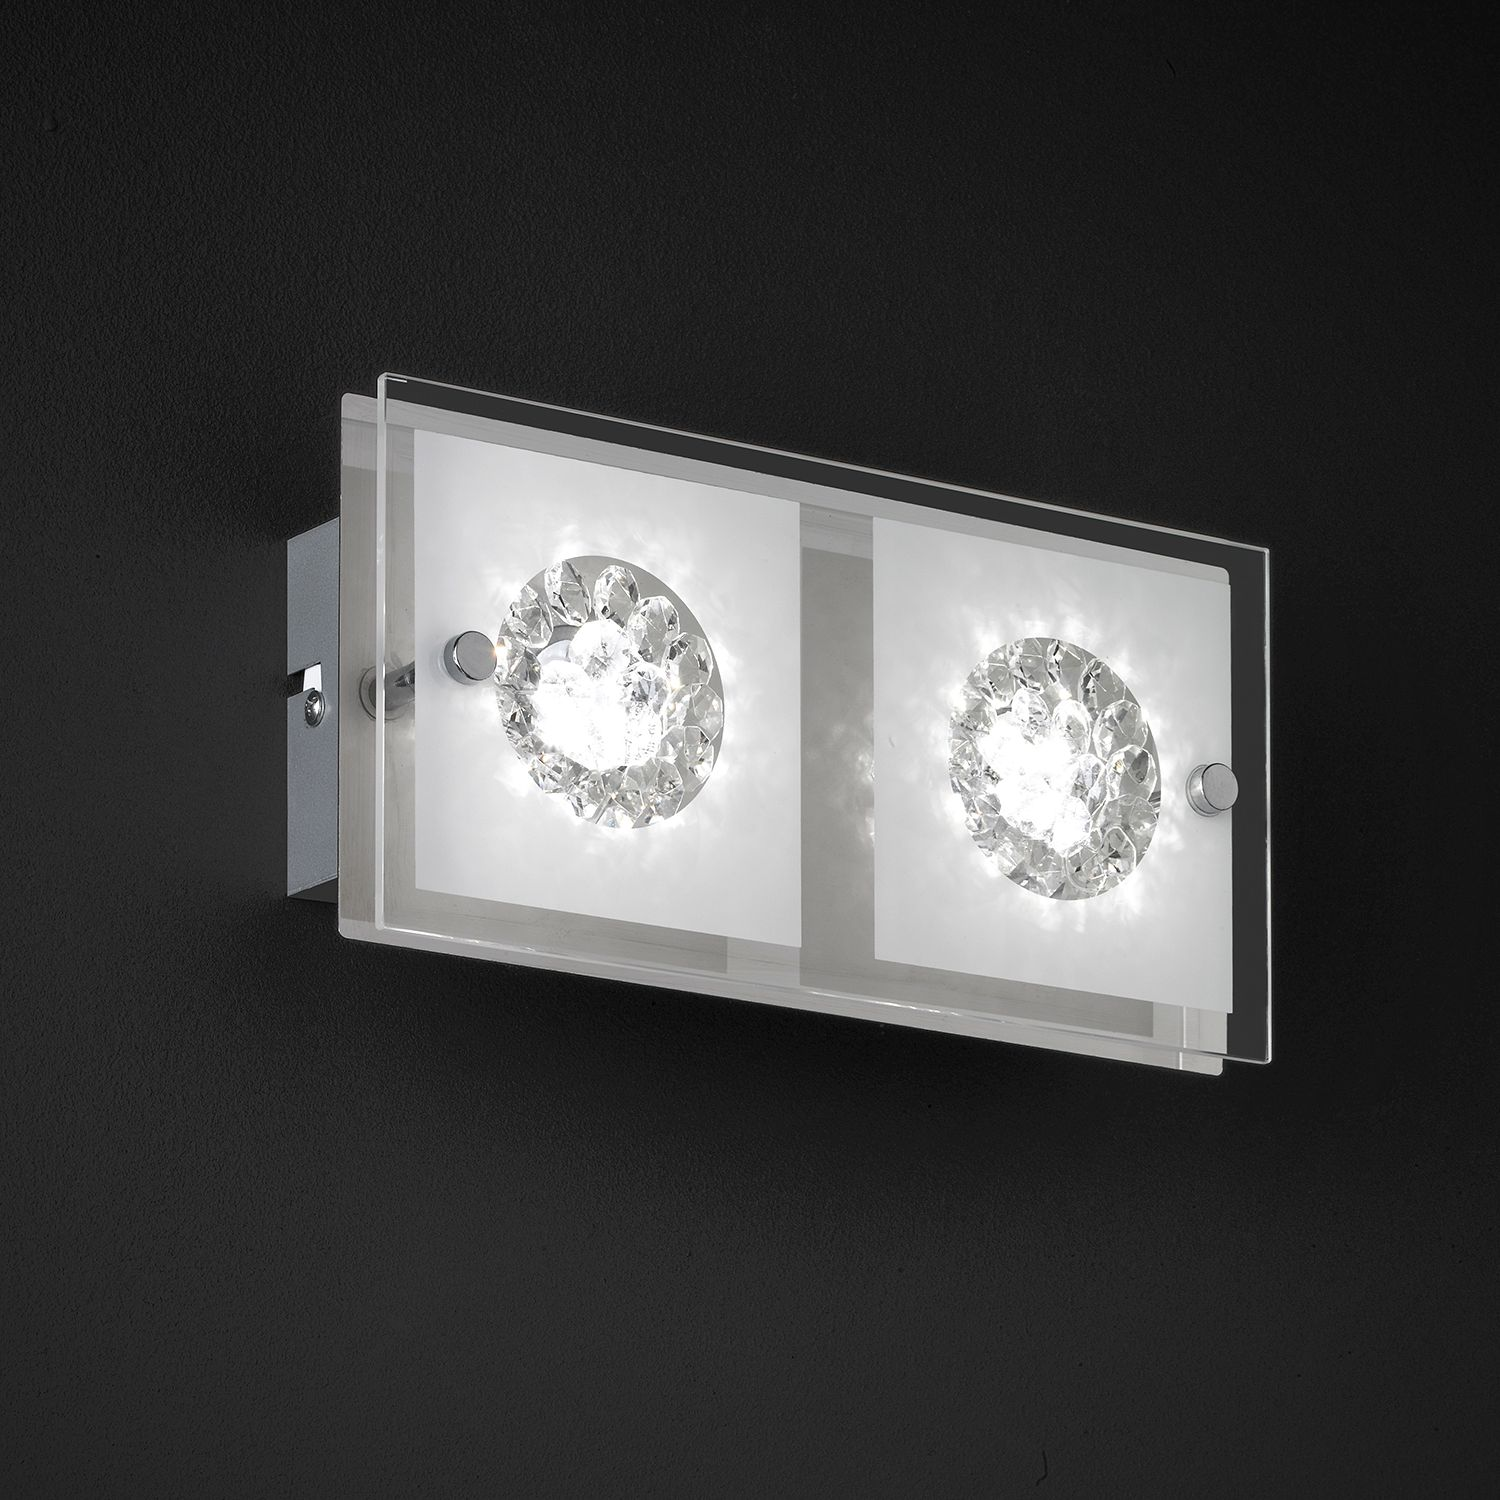 home24 LED-Wandleuchte Reims